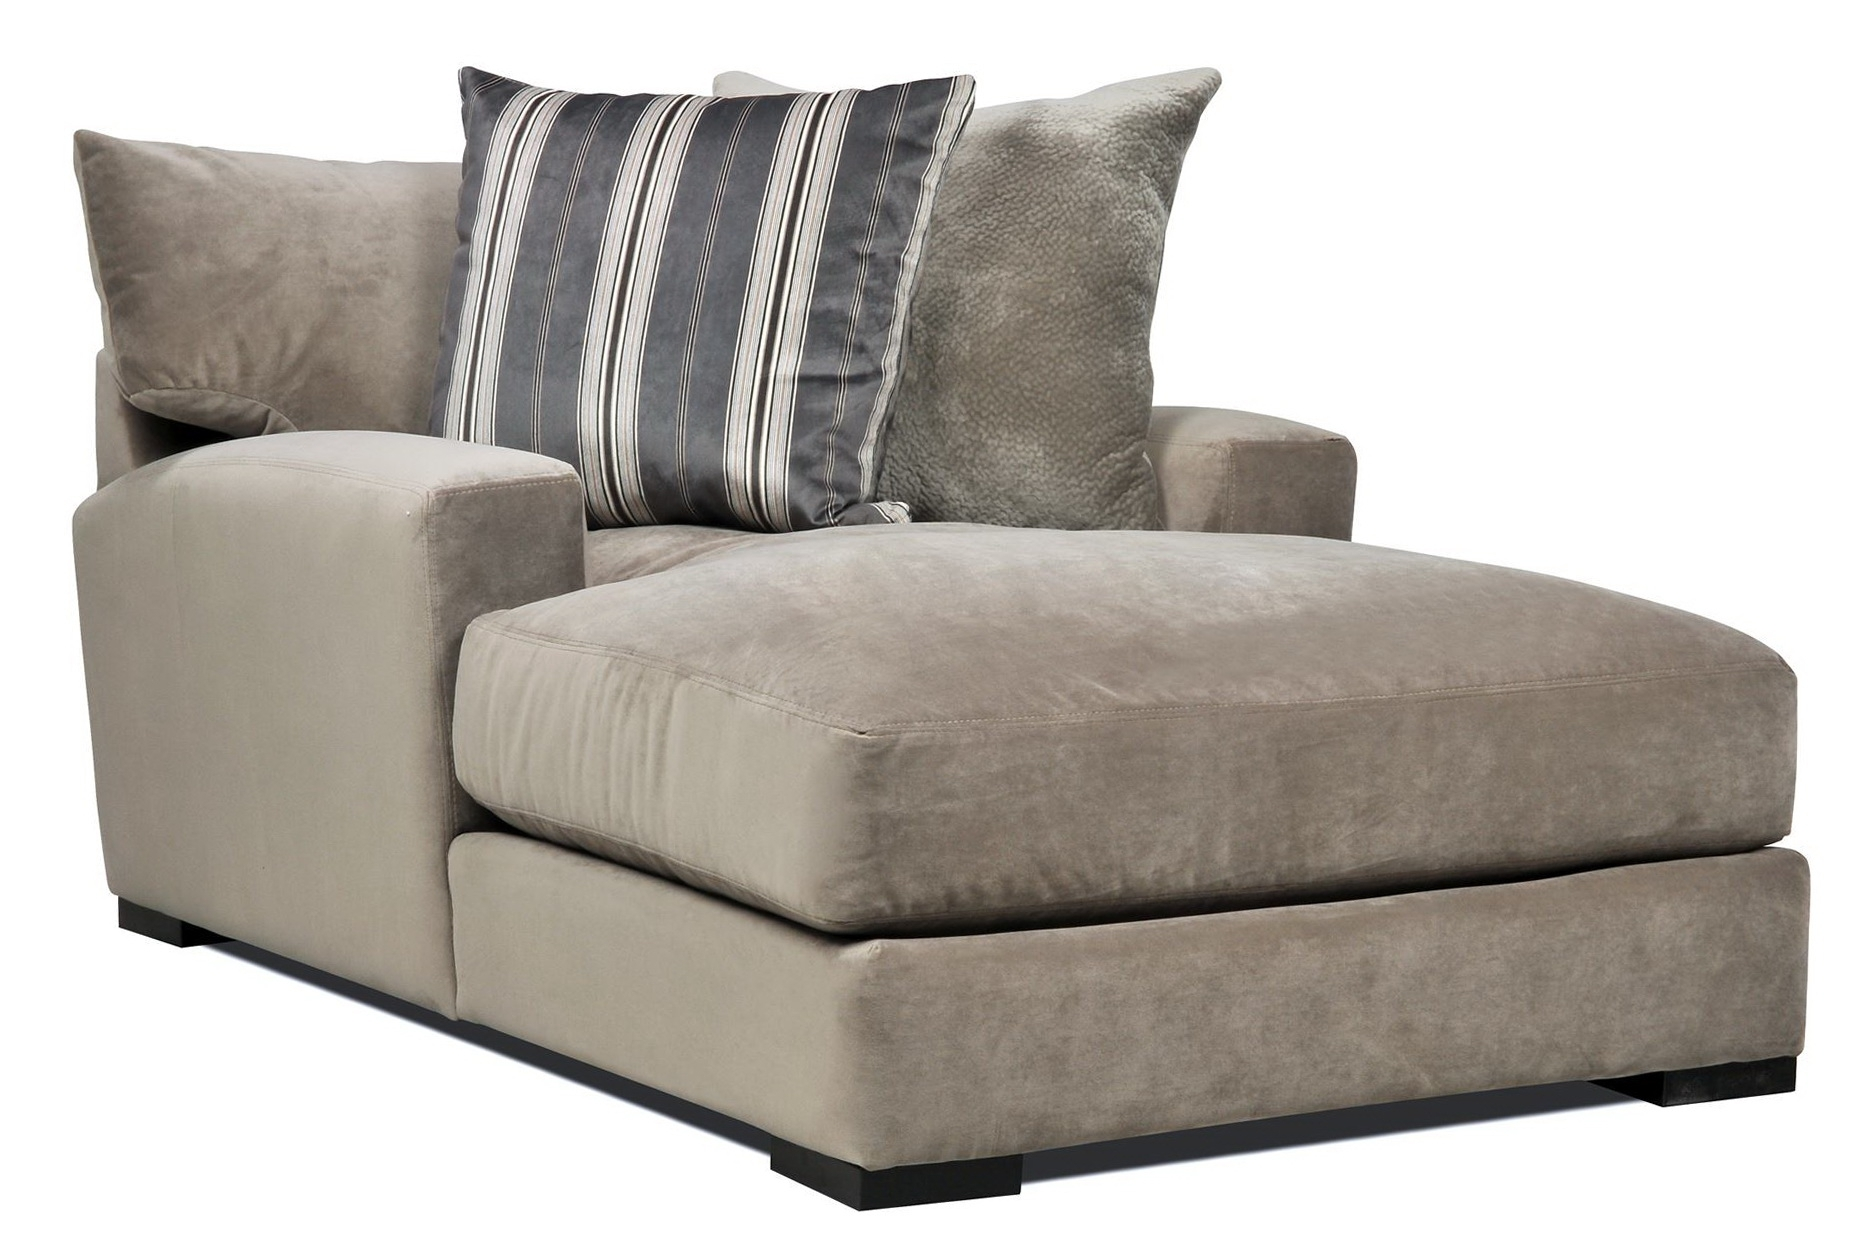 Popular Furniture: Chaise Lounge Couch (View 13 of 15)